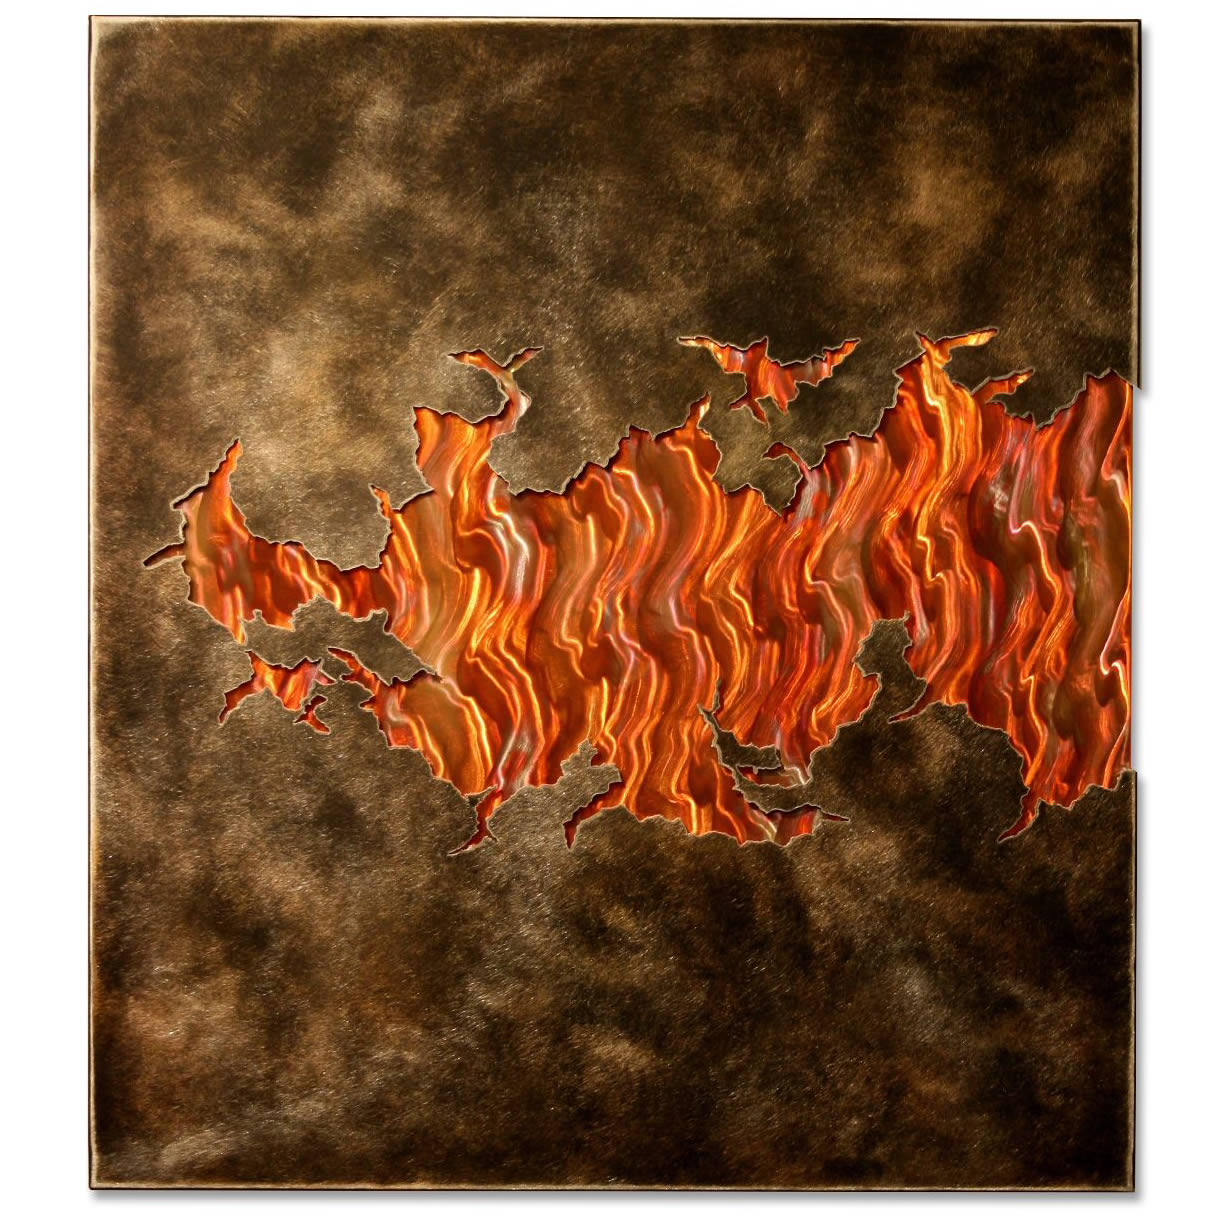 FIRE WITHIN V3 - Torch-Colored Metal Art by Nicholas Yust